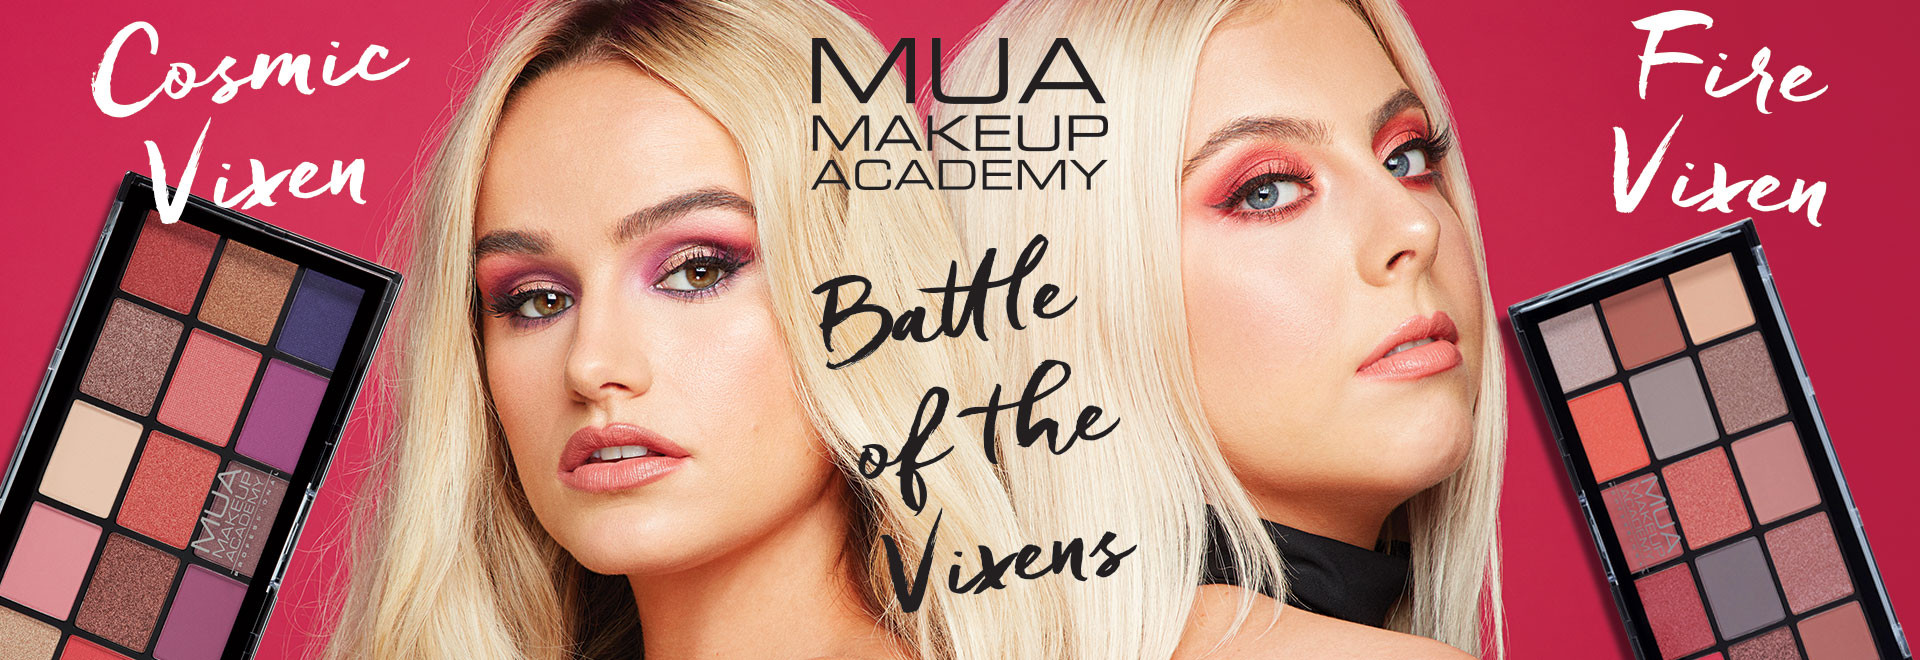 Battle of the Vixens!